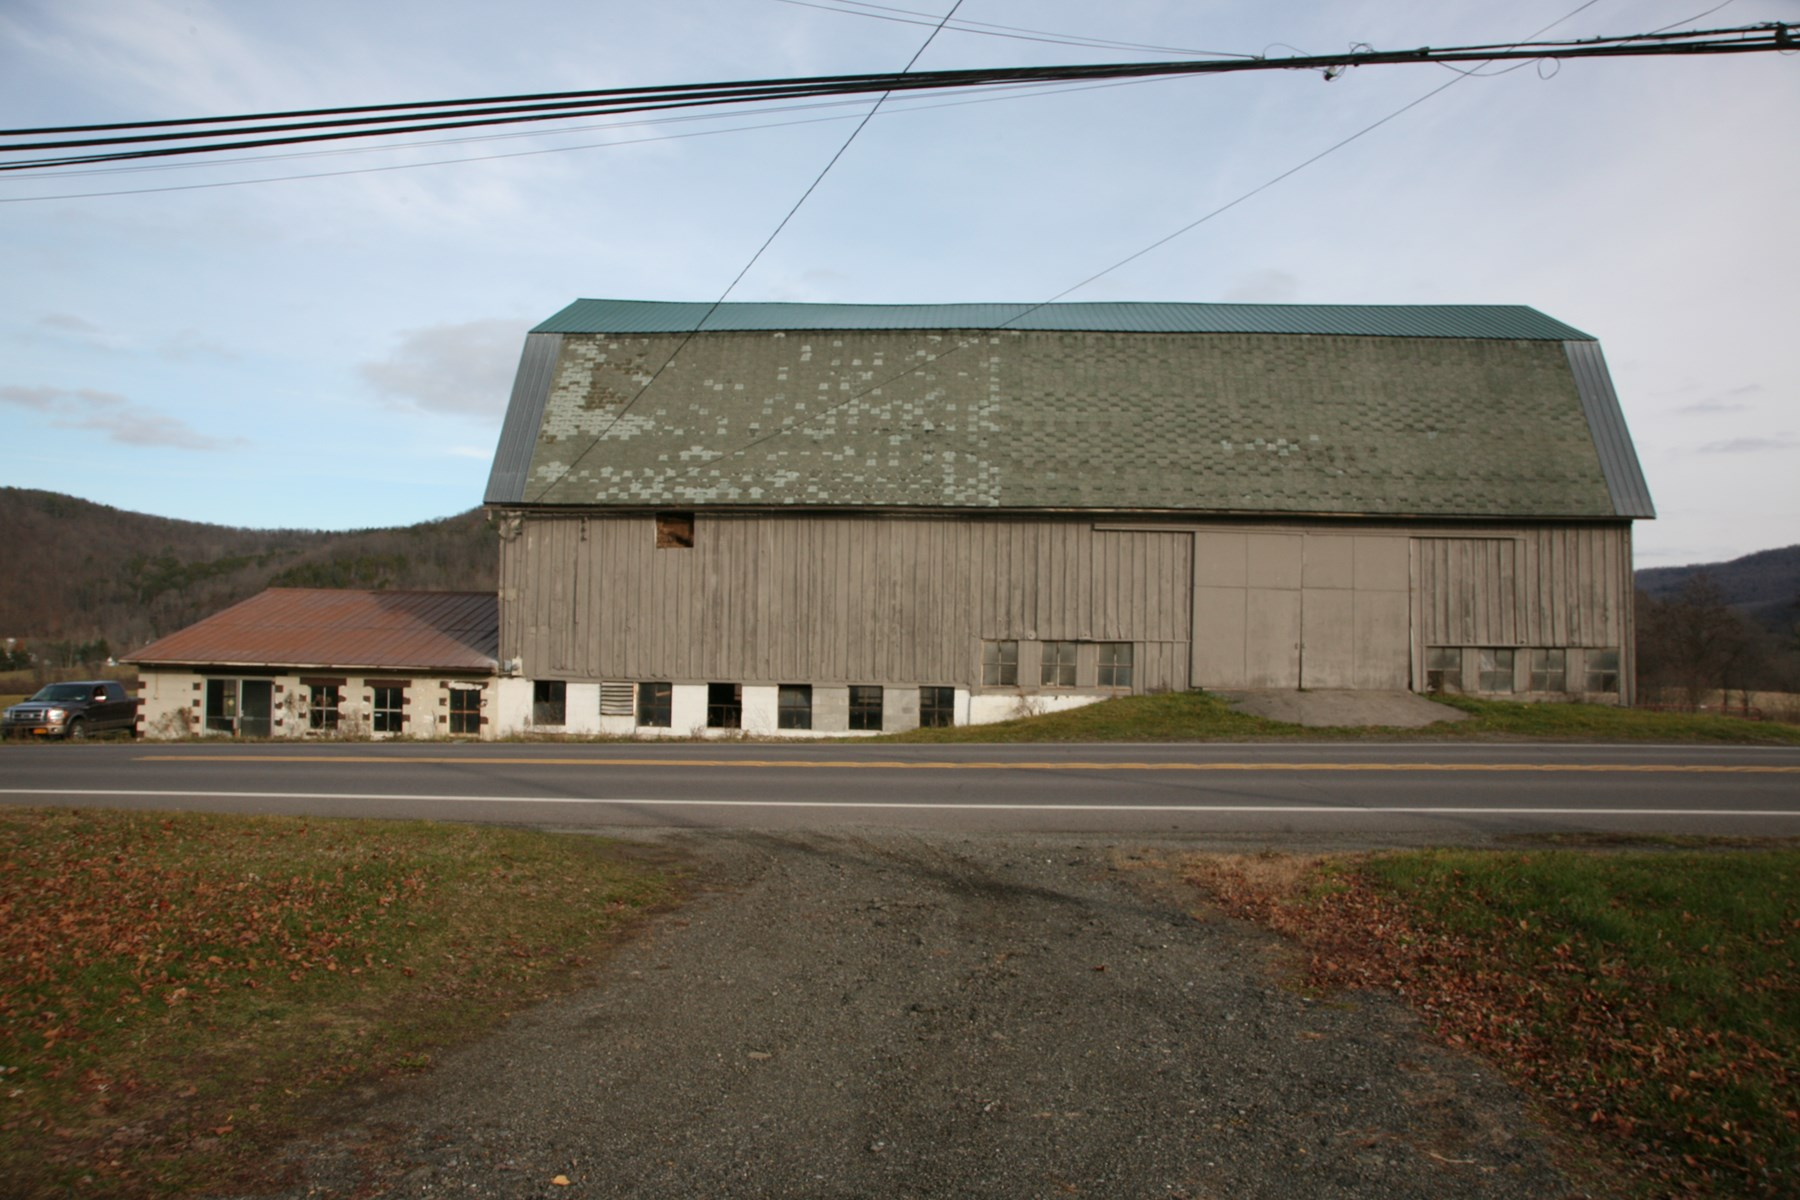 168 ACRE FARM FOR SALE - CANTON, PA - BRADFORD COUNTY